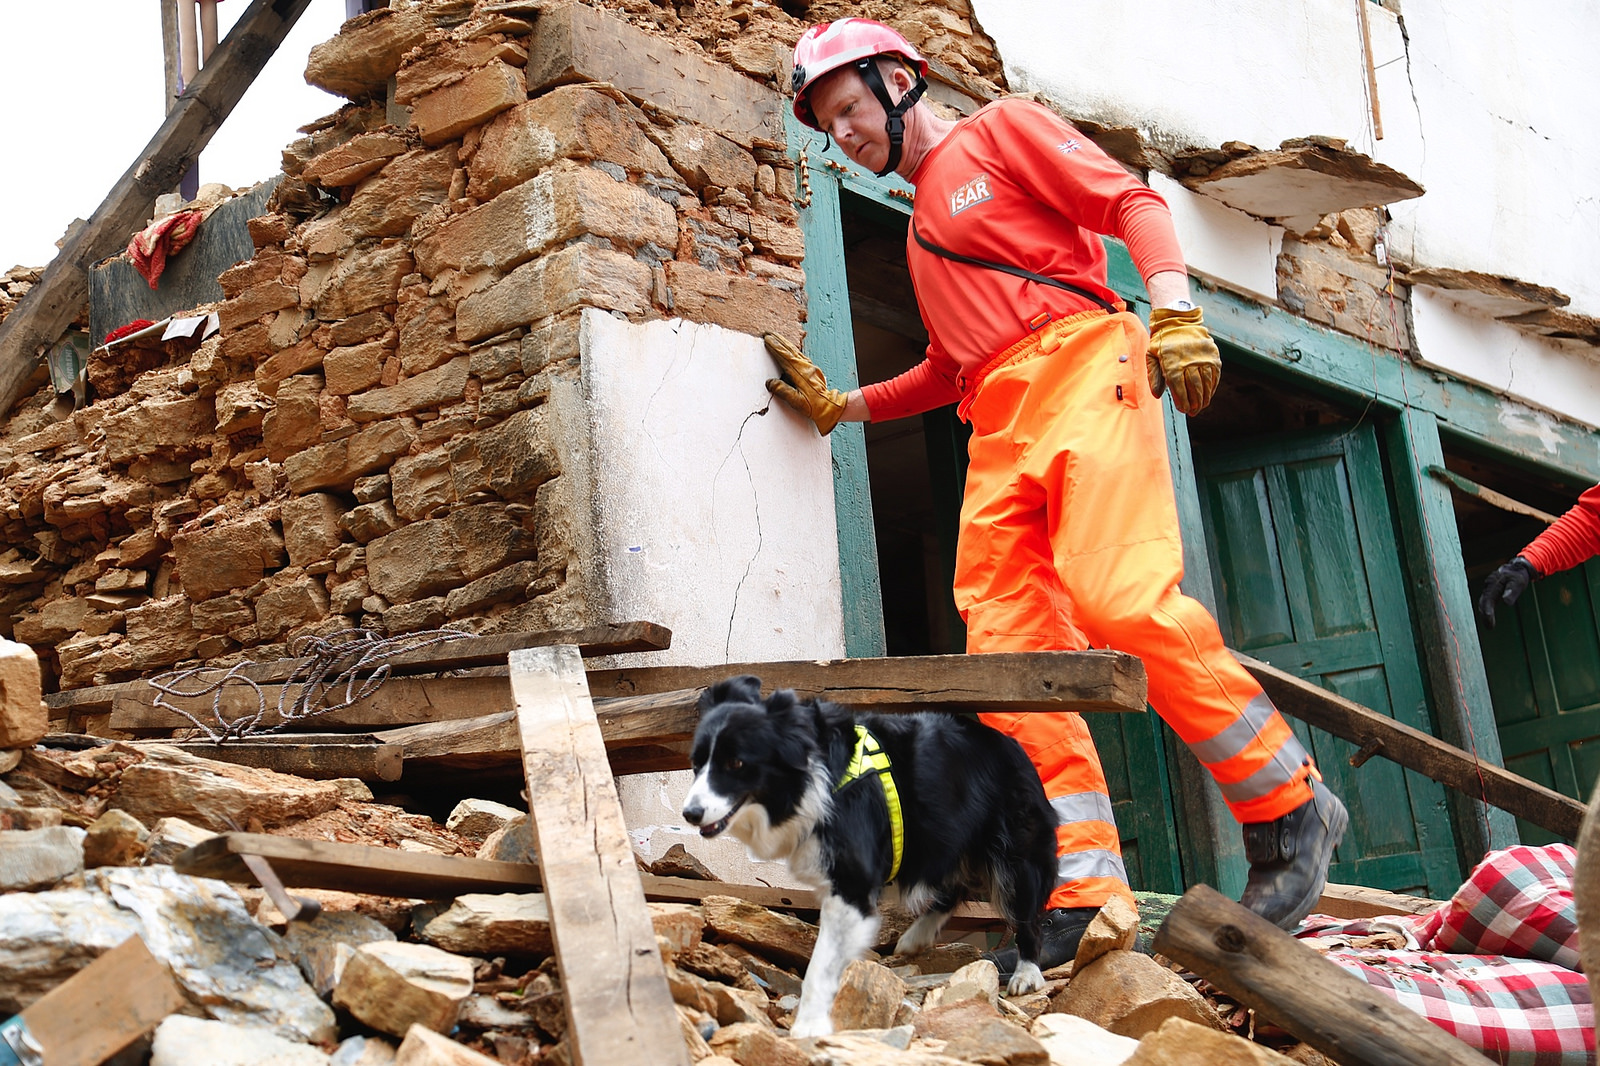 John Ball with rescue dog Darcy in Chautara, Nepal, DFID - UK Department for International Development April 29, 2015